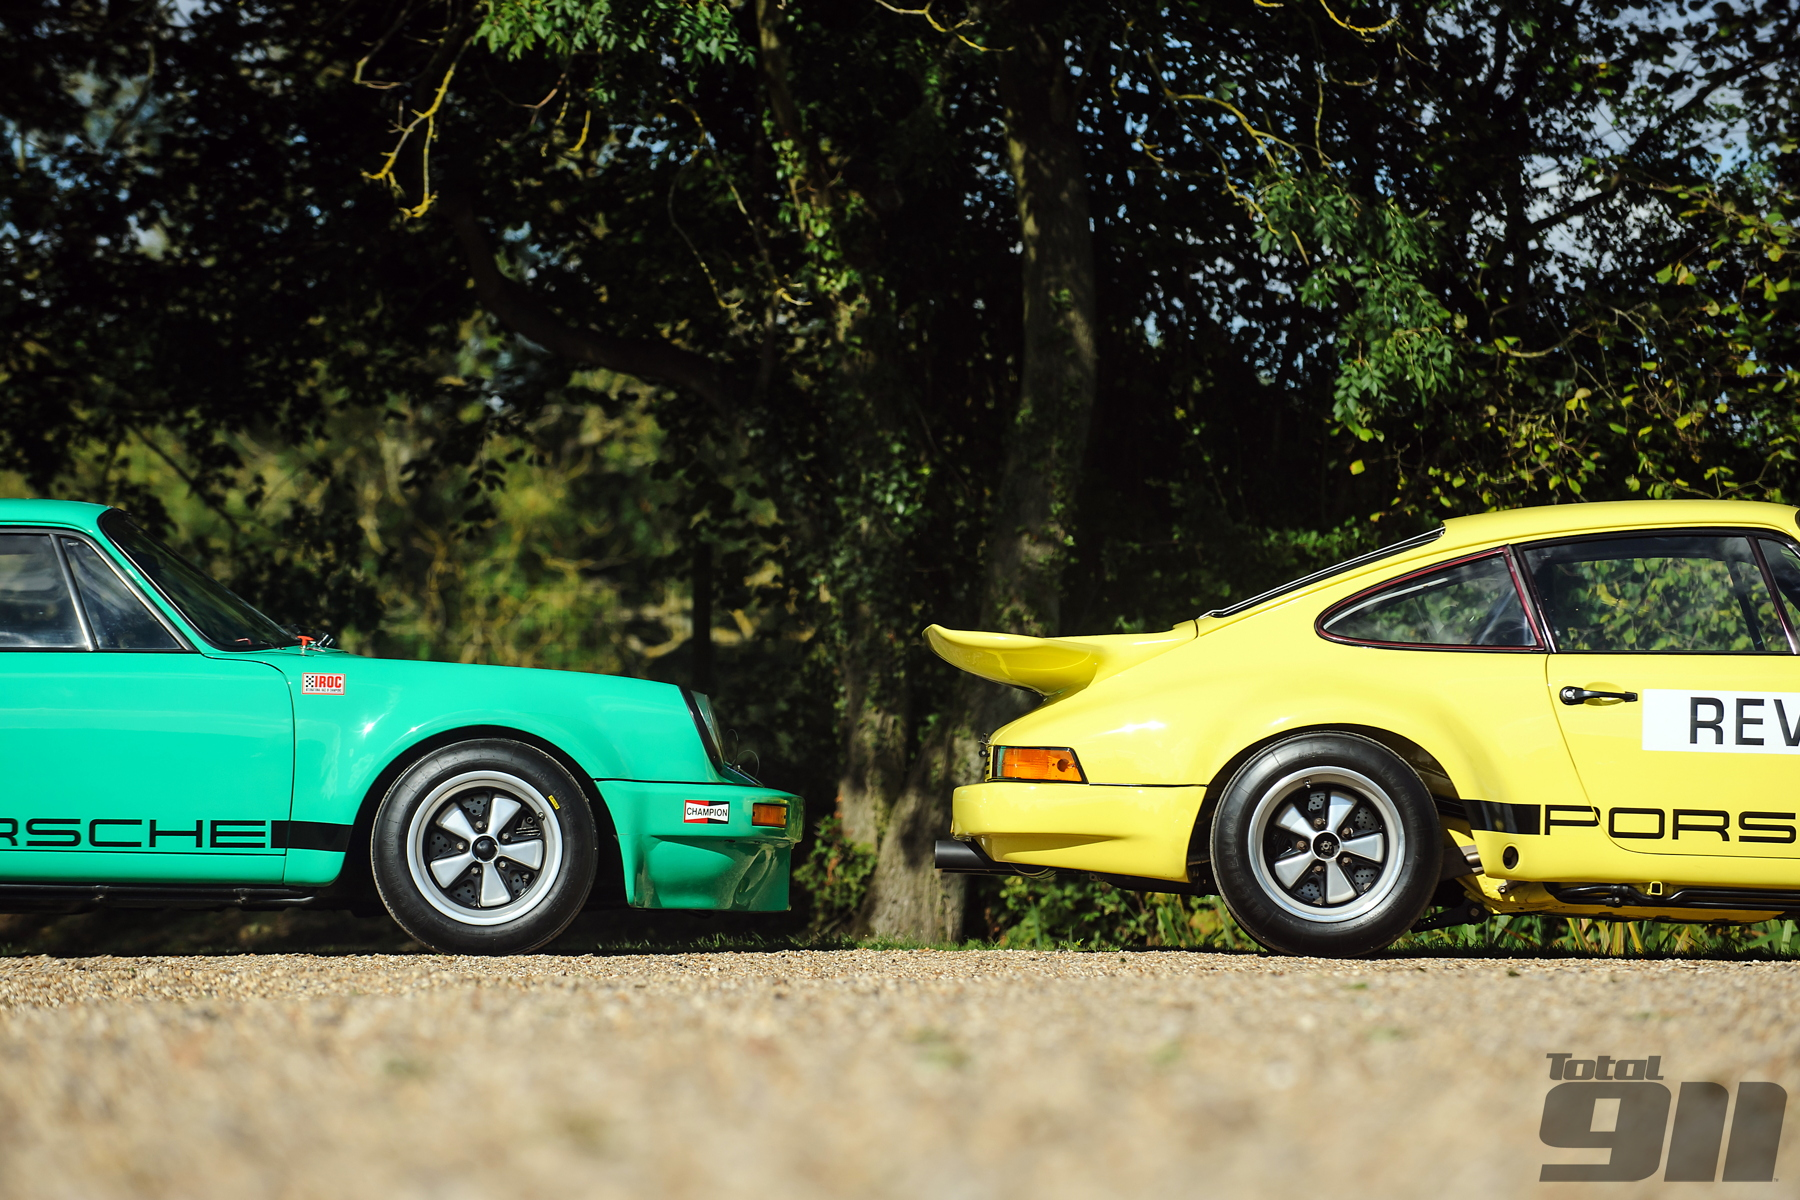 Reunited for the first time since 1974, we fire up these two IROC RSRs for an unforgettable test drive.